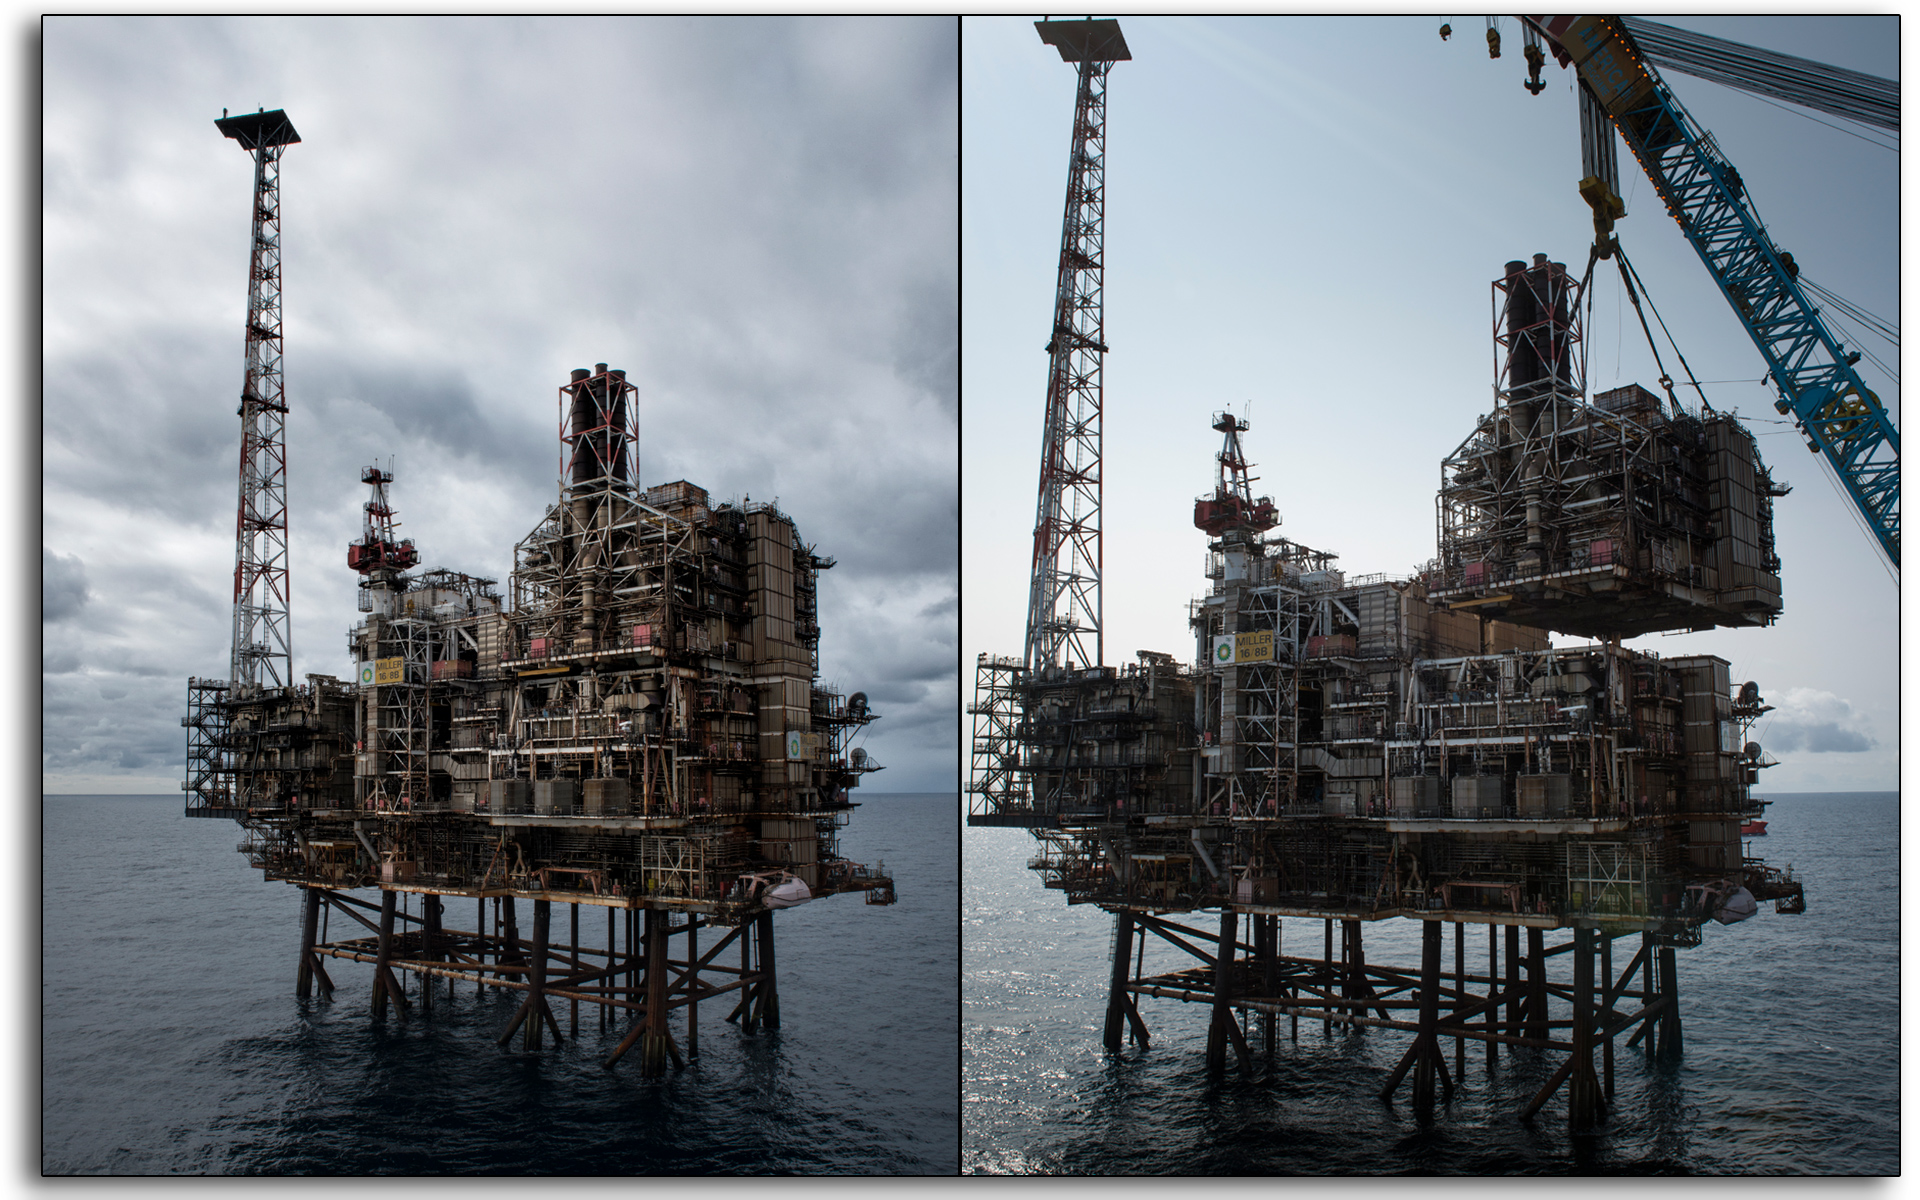 Miller, BP, Petrofac, decommissioning, industrial, north sea, offshore, oil and gas industry.jpg